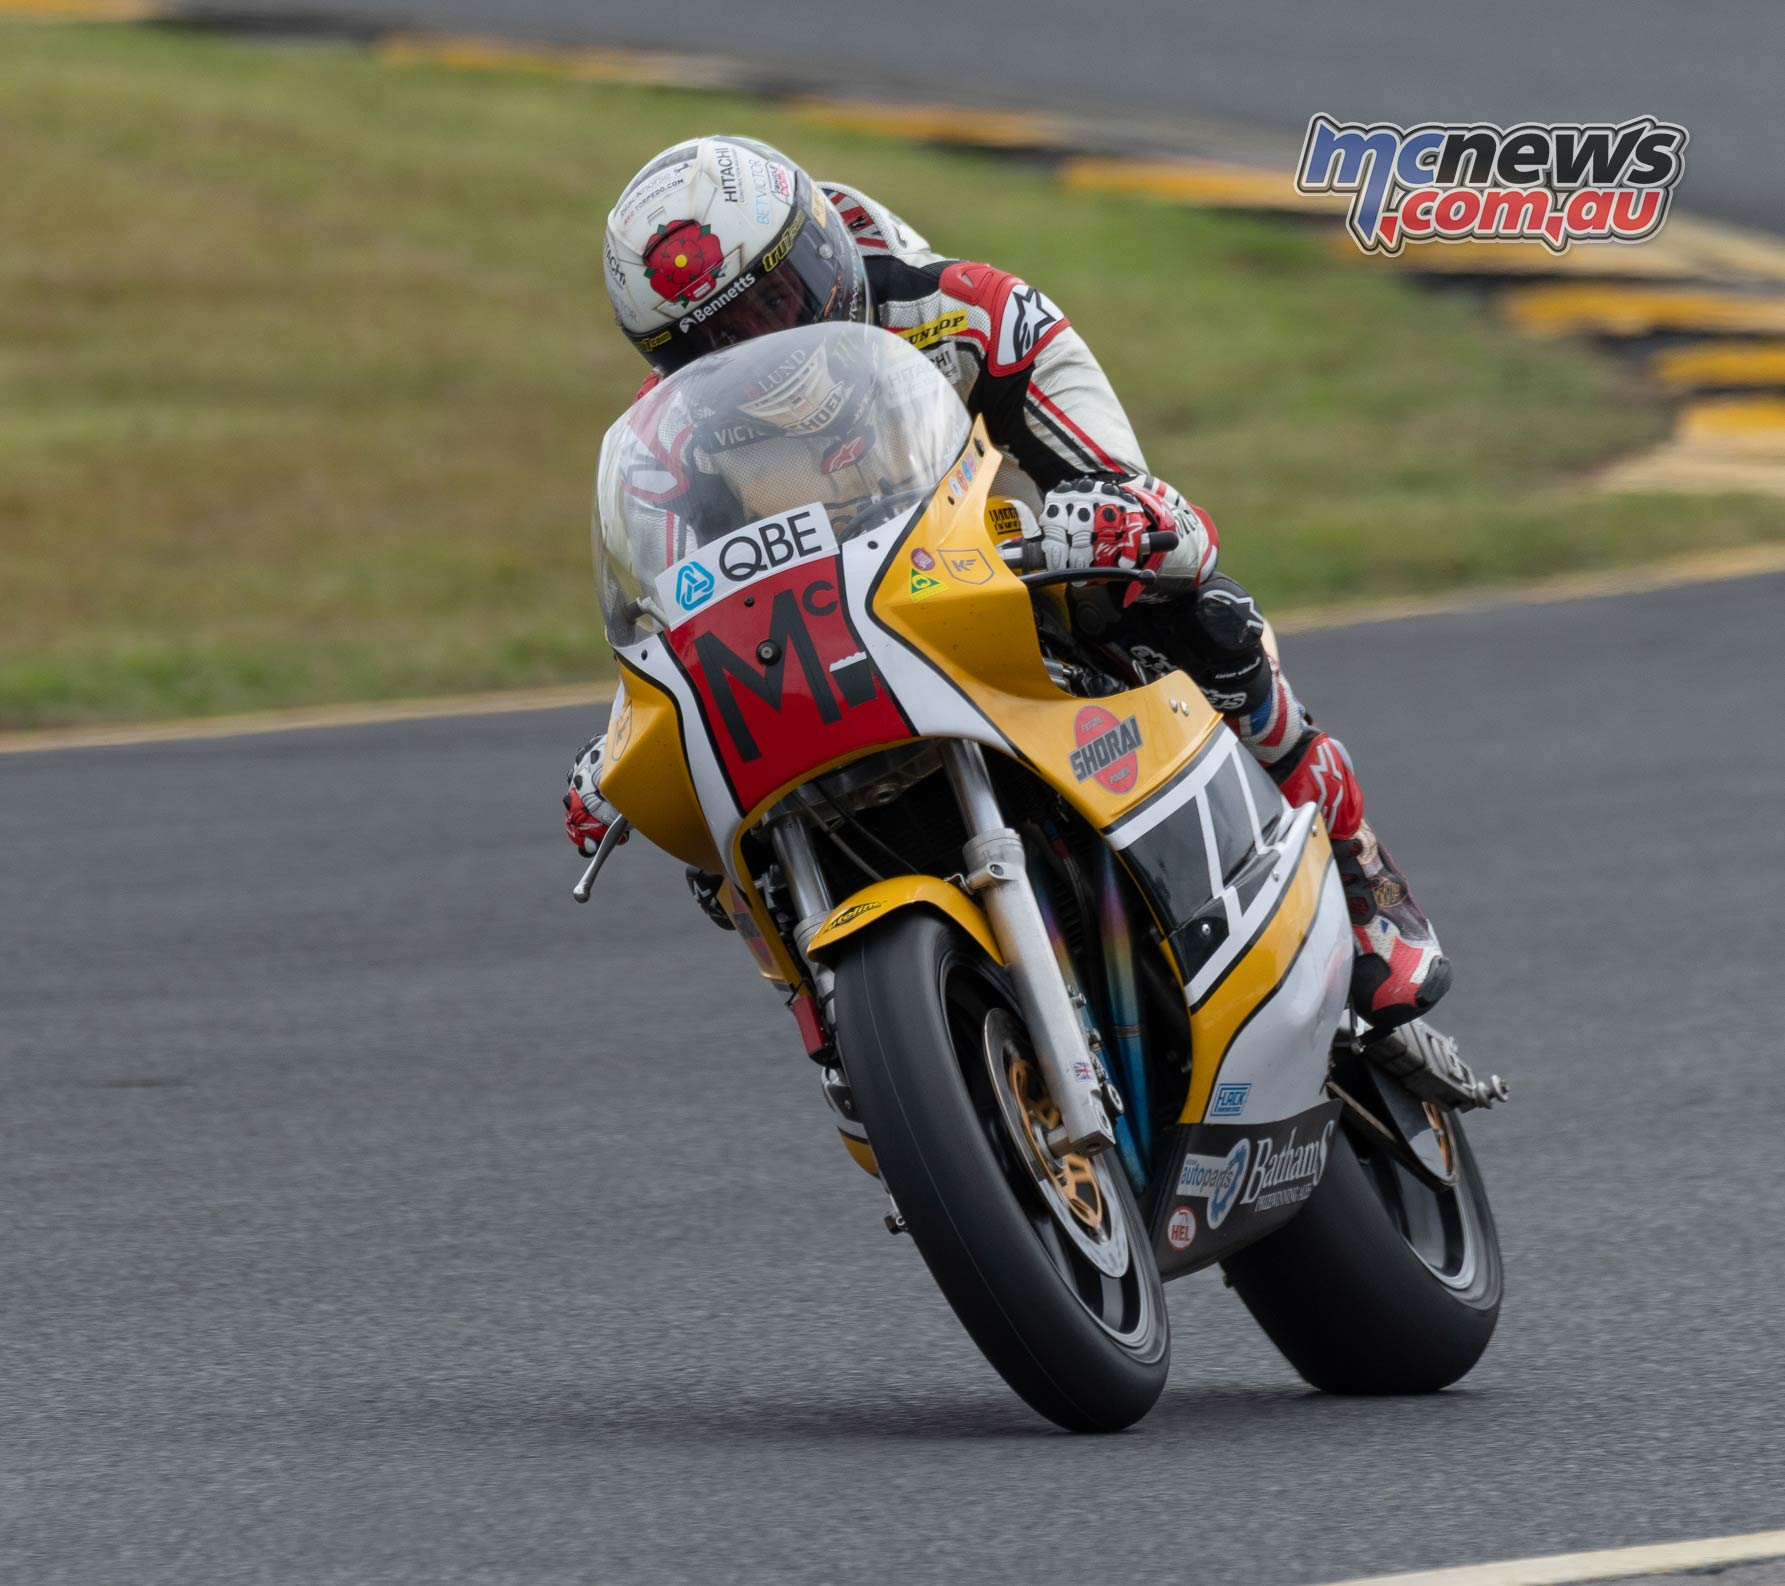 INTERFOS RbMotoLens John McGuinness